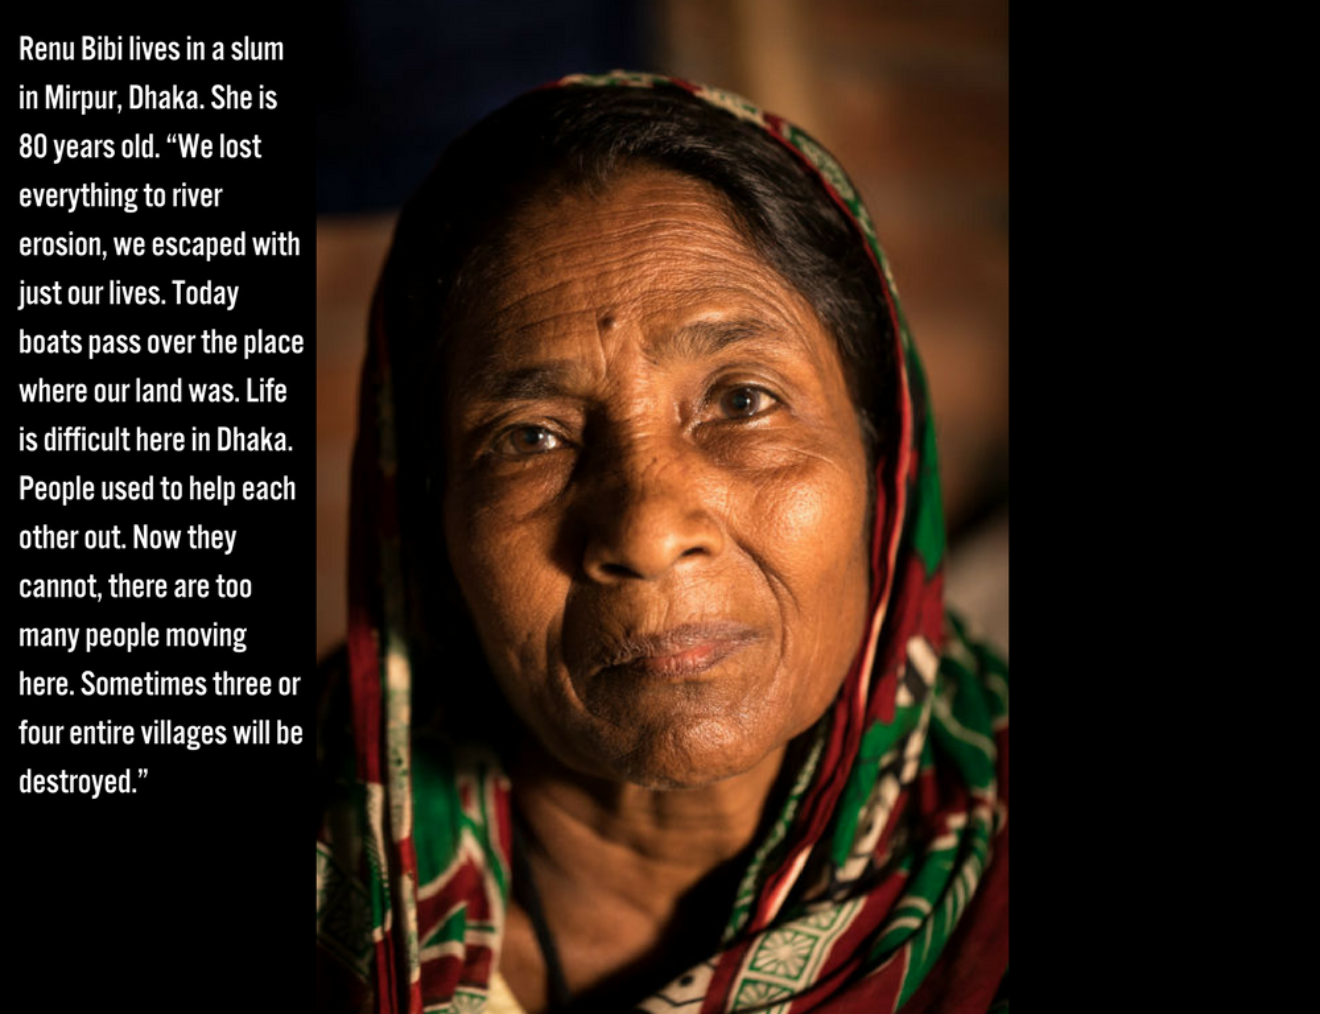 """Renu Bibi Lives In A Slum In Mirpur Dhaka  She Is 80 Years Old """" We Lost Everything To River Erosion We Escaped With Just Our Lives  Today Boats Pass Over The Place Where Our Land Was  Life Is Difficult Here In Dha"""